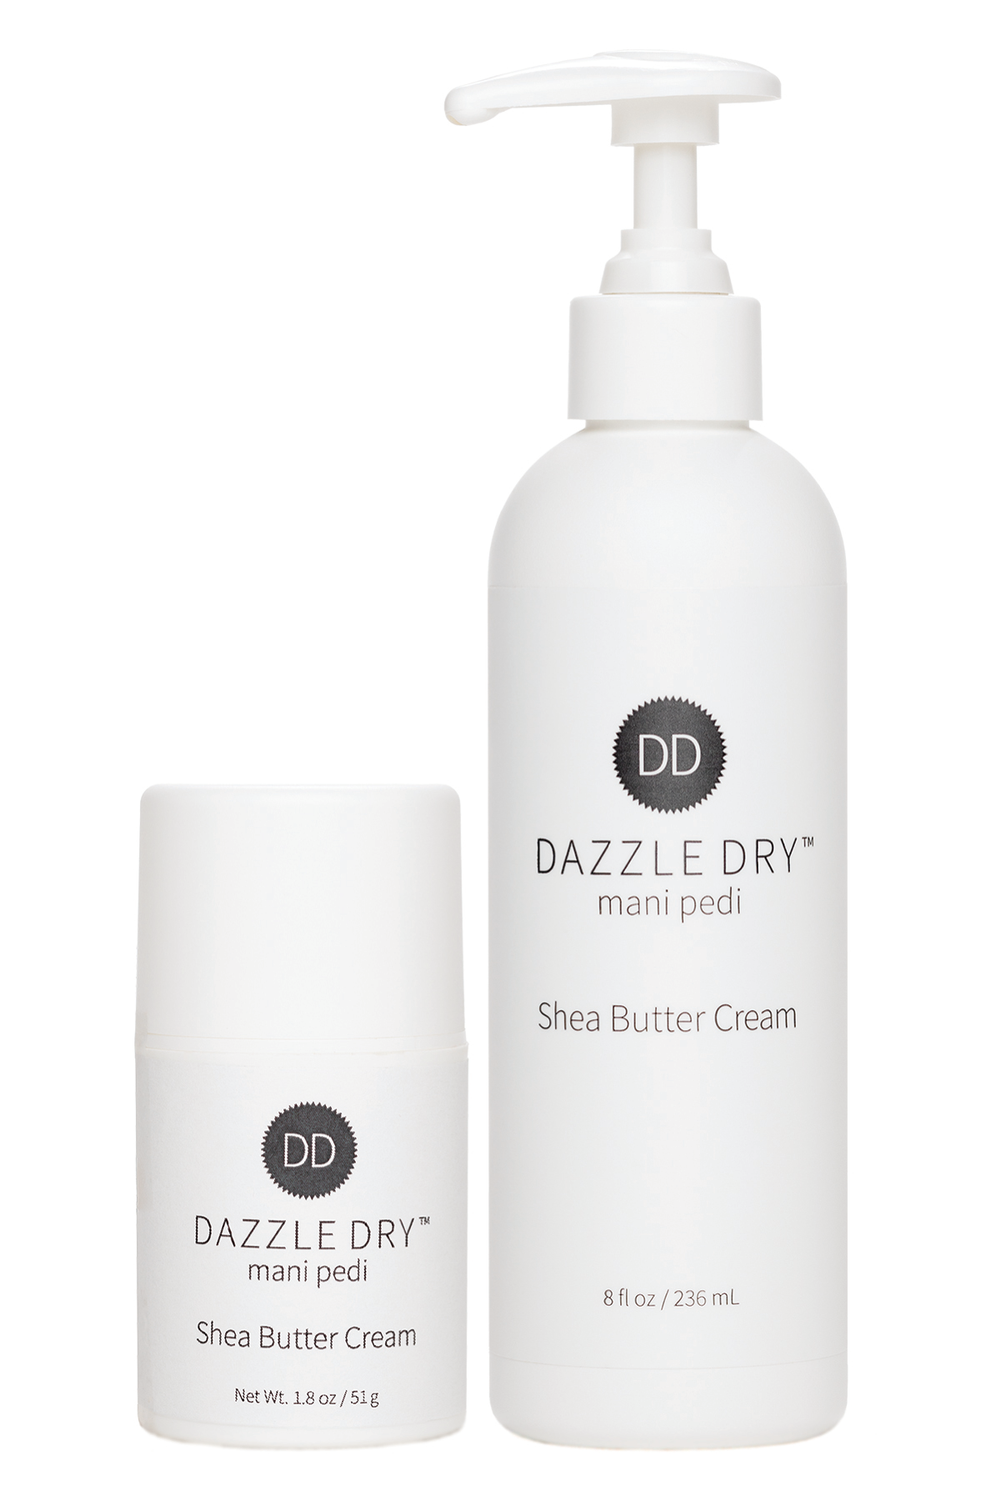 """<p>Dazzle Dry Mani Pedi Shea Butter Cream delivers 11 soothing and energizing essential oils along with green tea, marine extracts, urea, grape seed oil, and shea butter. It absorbs deeply to balance skin's optimal hydration levels. Non-greasy, with no parabens or harmful or reactive ingredients, it's safe for damaged or sensitive skin types.</p> <p><a href=""""http://www.dazzledry.com"""">www.dazzledry.com</a></p>"""